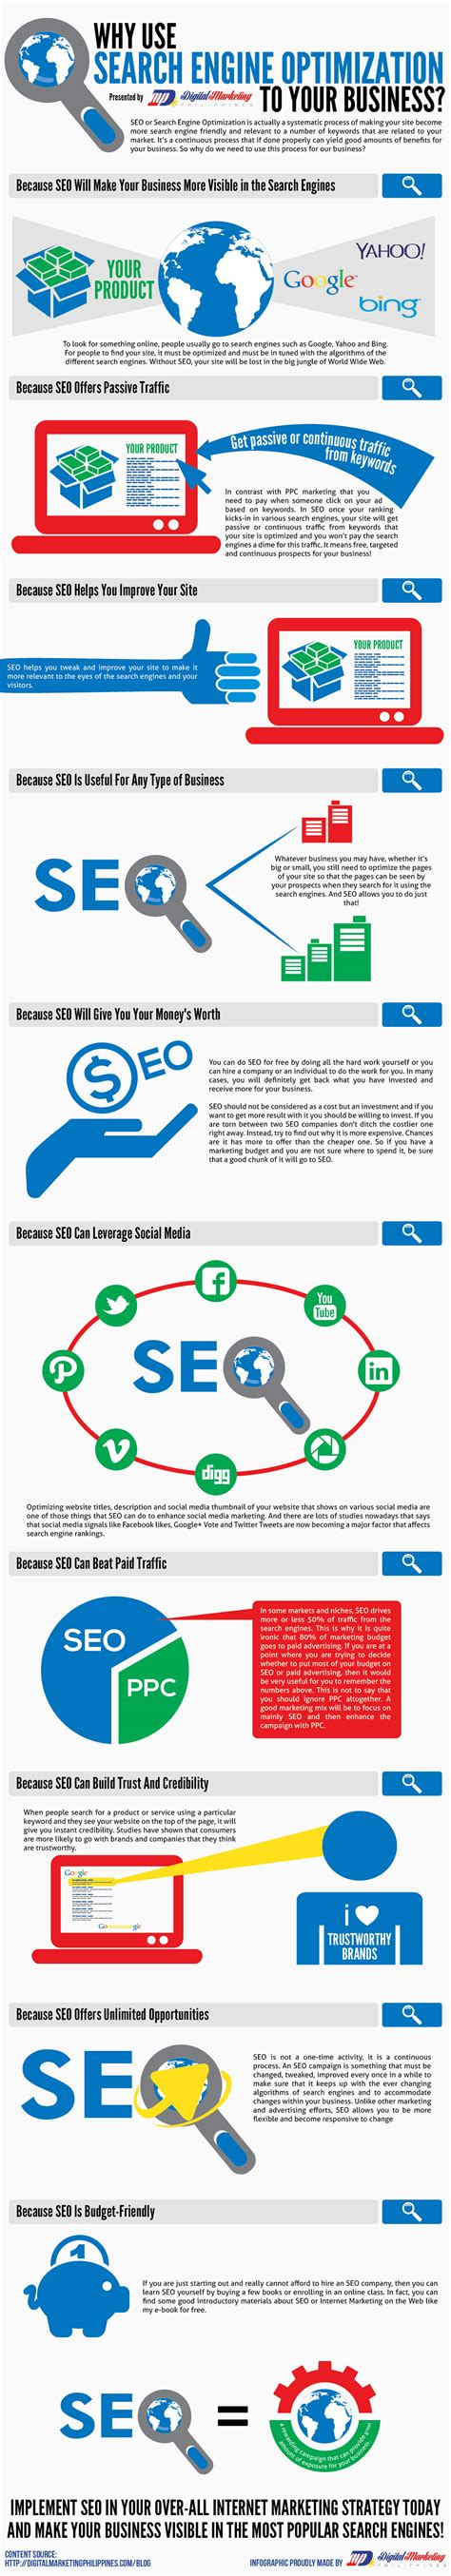 Business Email Search Engine Why Use Search Engine Optimization To Your Business Infographic